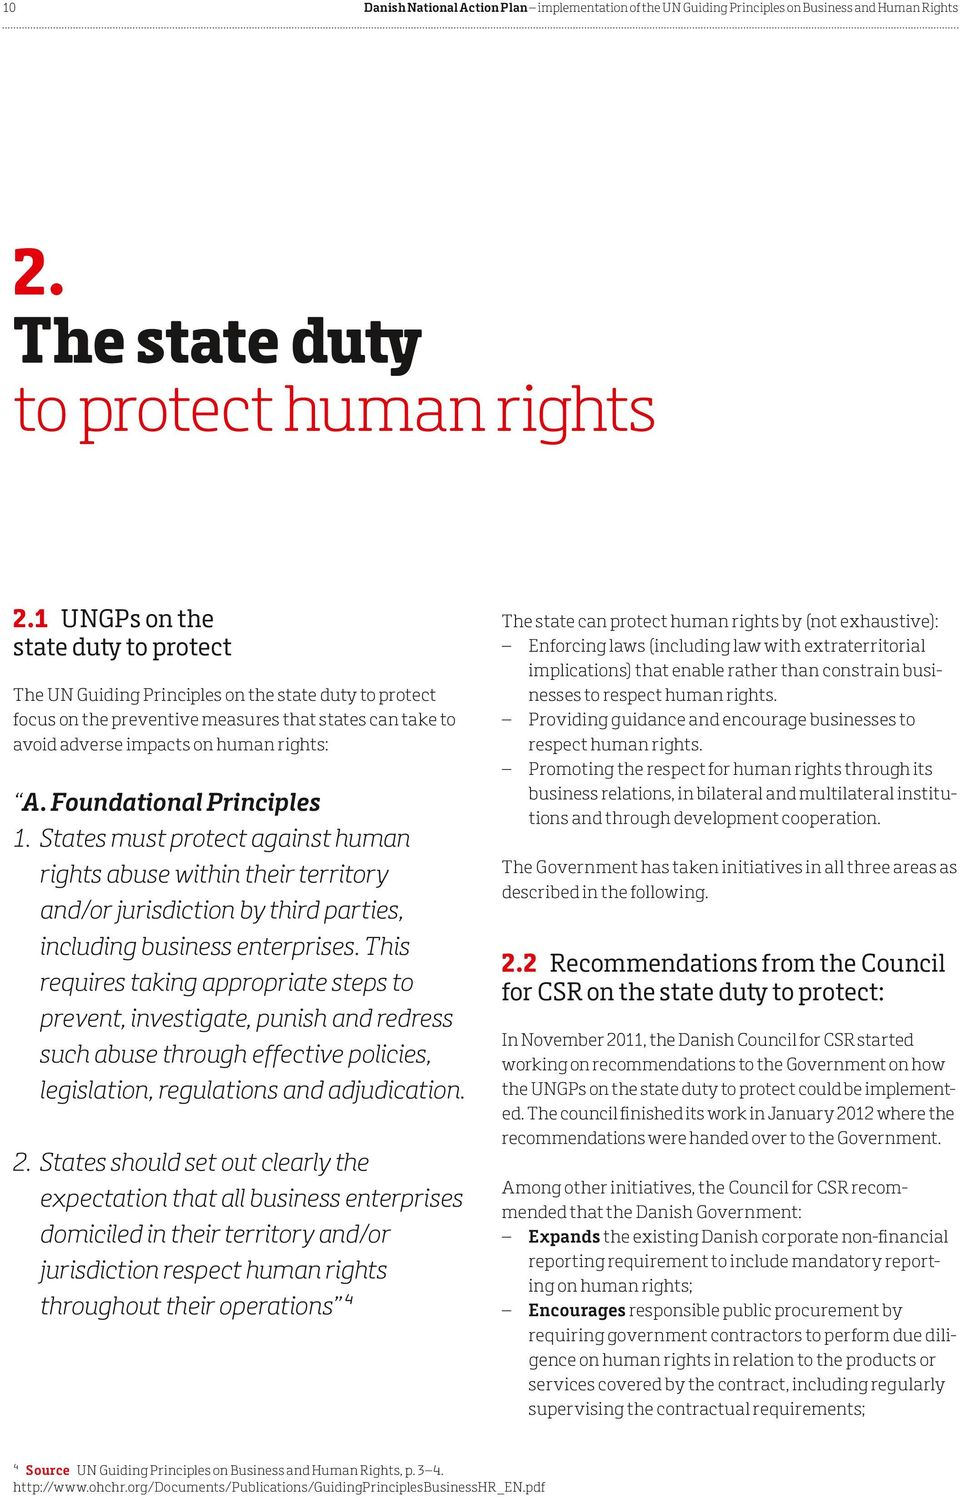 Foundational Principles 1. States must protect against human rights abuse within their territory and/or jurisdiction by third parties, including business enterprises.